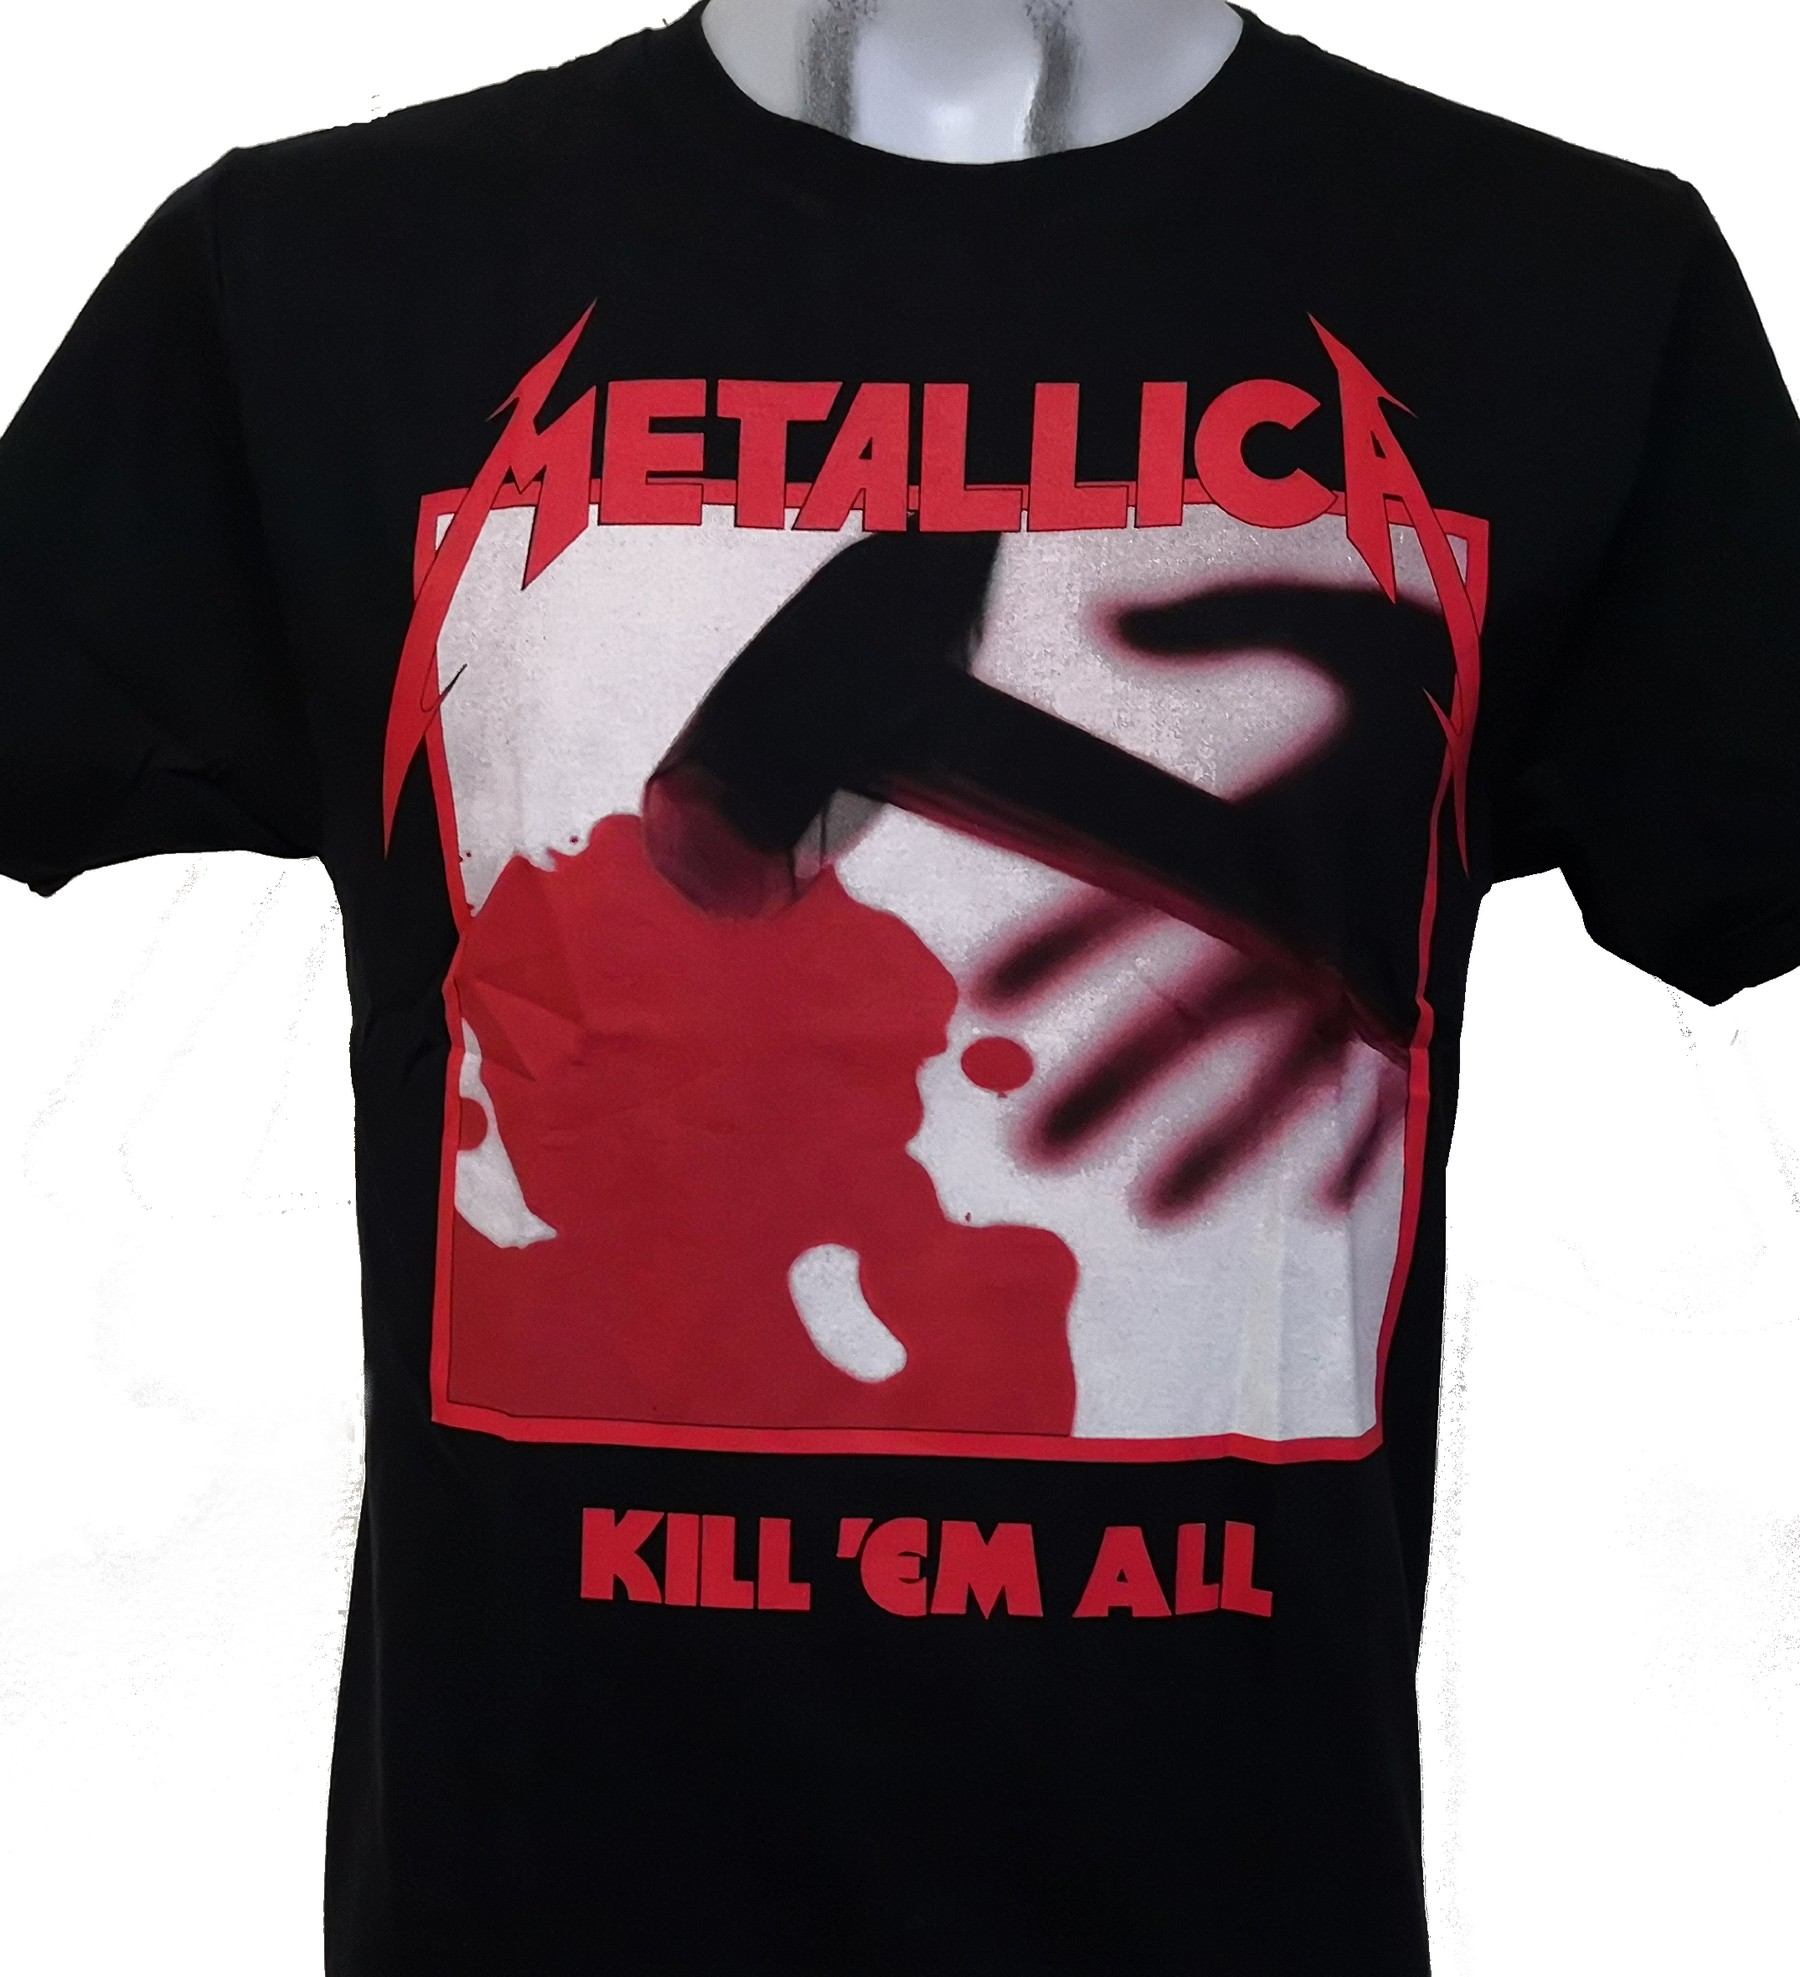 Metallica  Kids  100/% Cotton Black T-shirt sizes 2-4  4-6  6-8  8-10  10-12